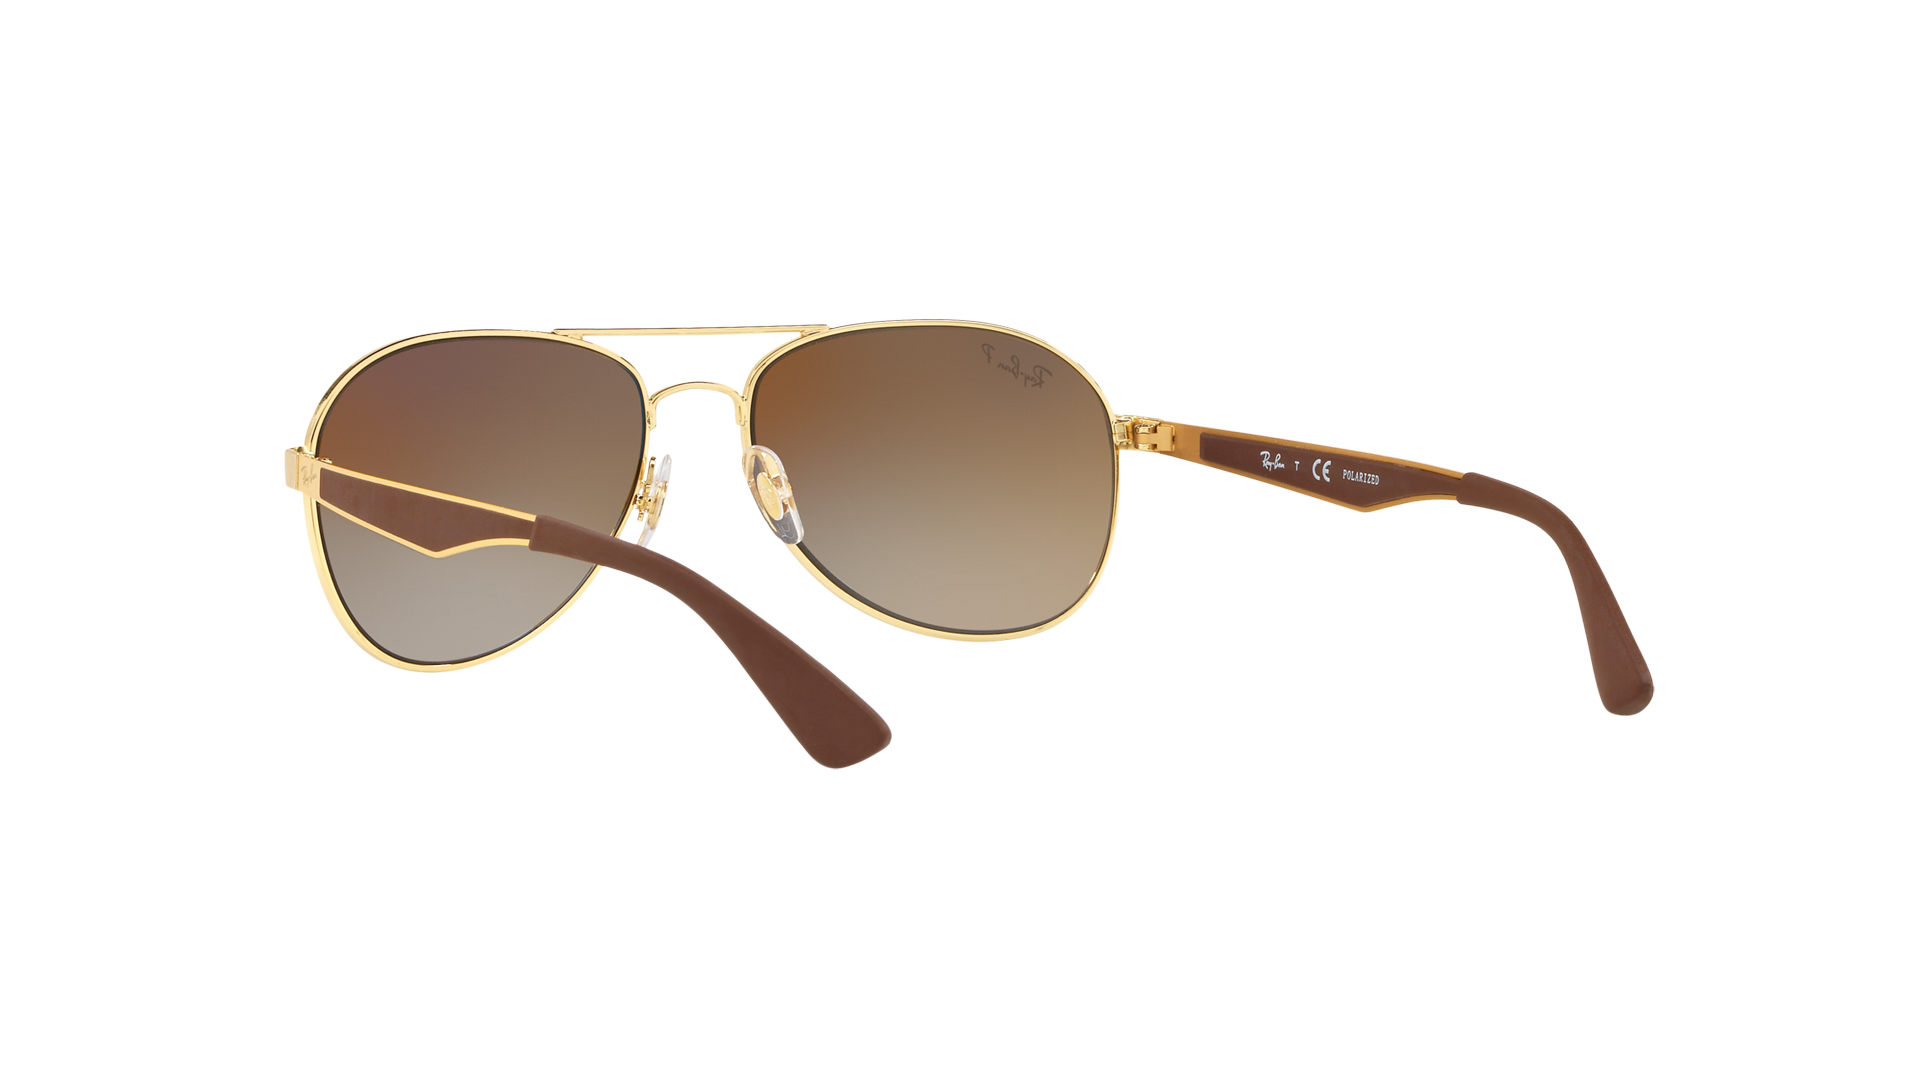 e41d29c7167 Sunglasses Ray-Ban Aviator large metal Gold RB3549 001 T5 58-16 Large  Polarized